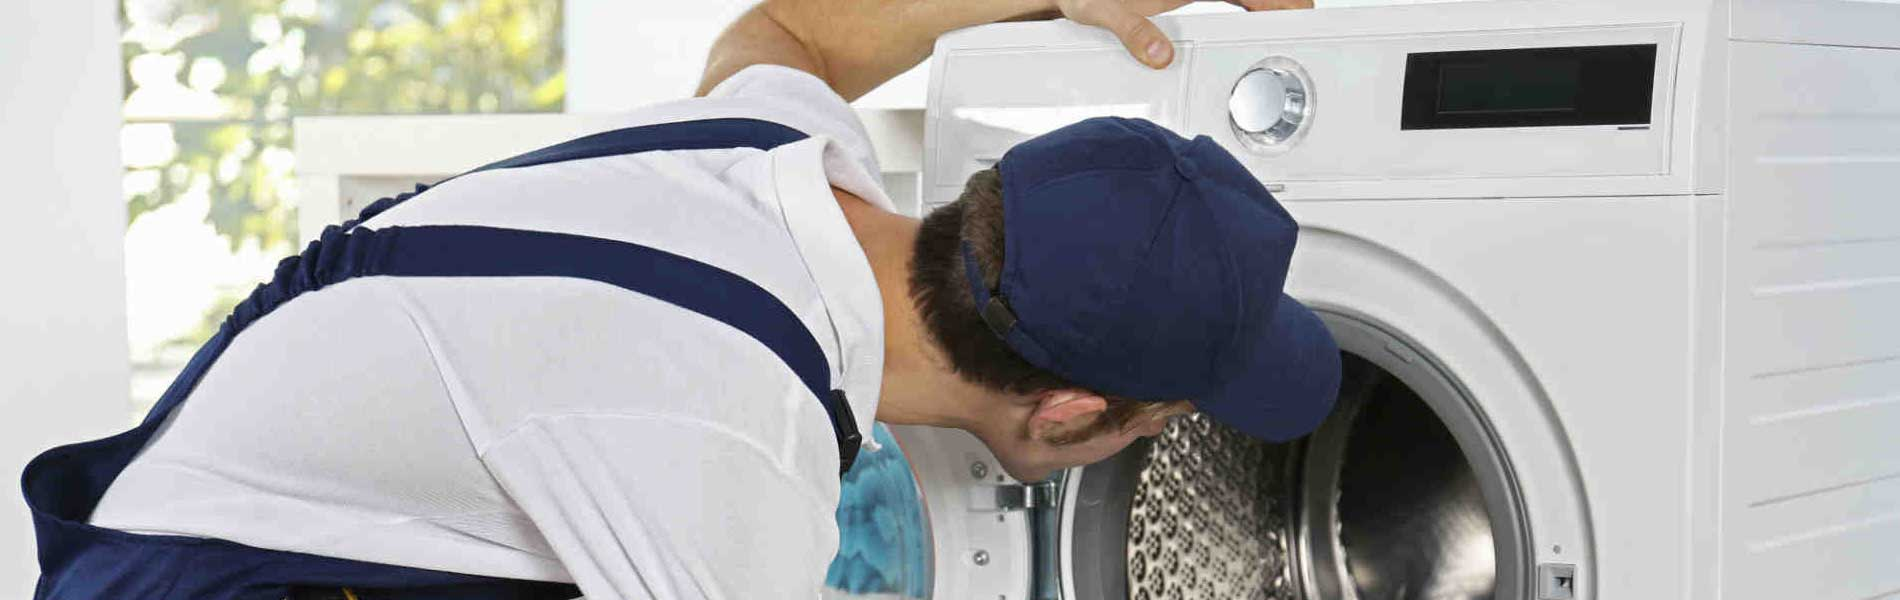 LG Washing Machine Repair in Nanmangalam